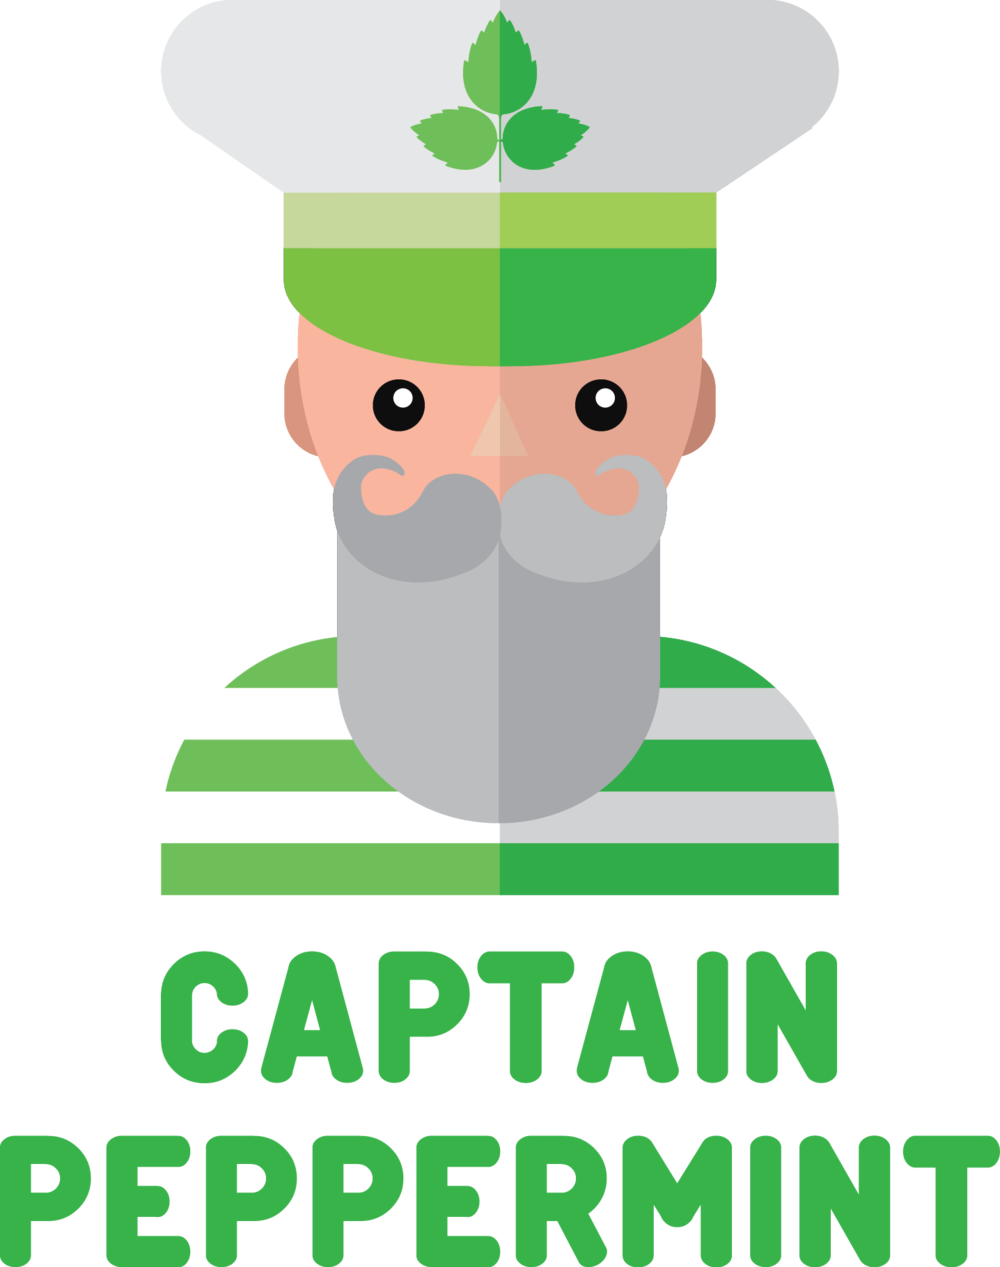 Flu clipart nasal congestion. Cold captain peppermint